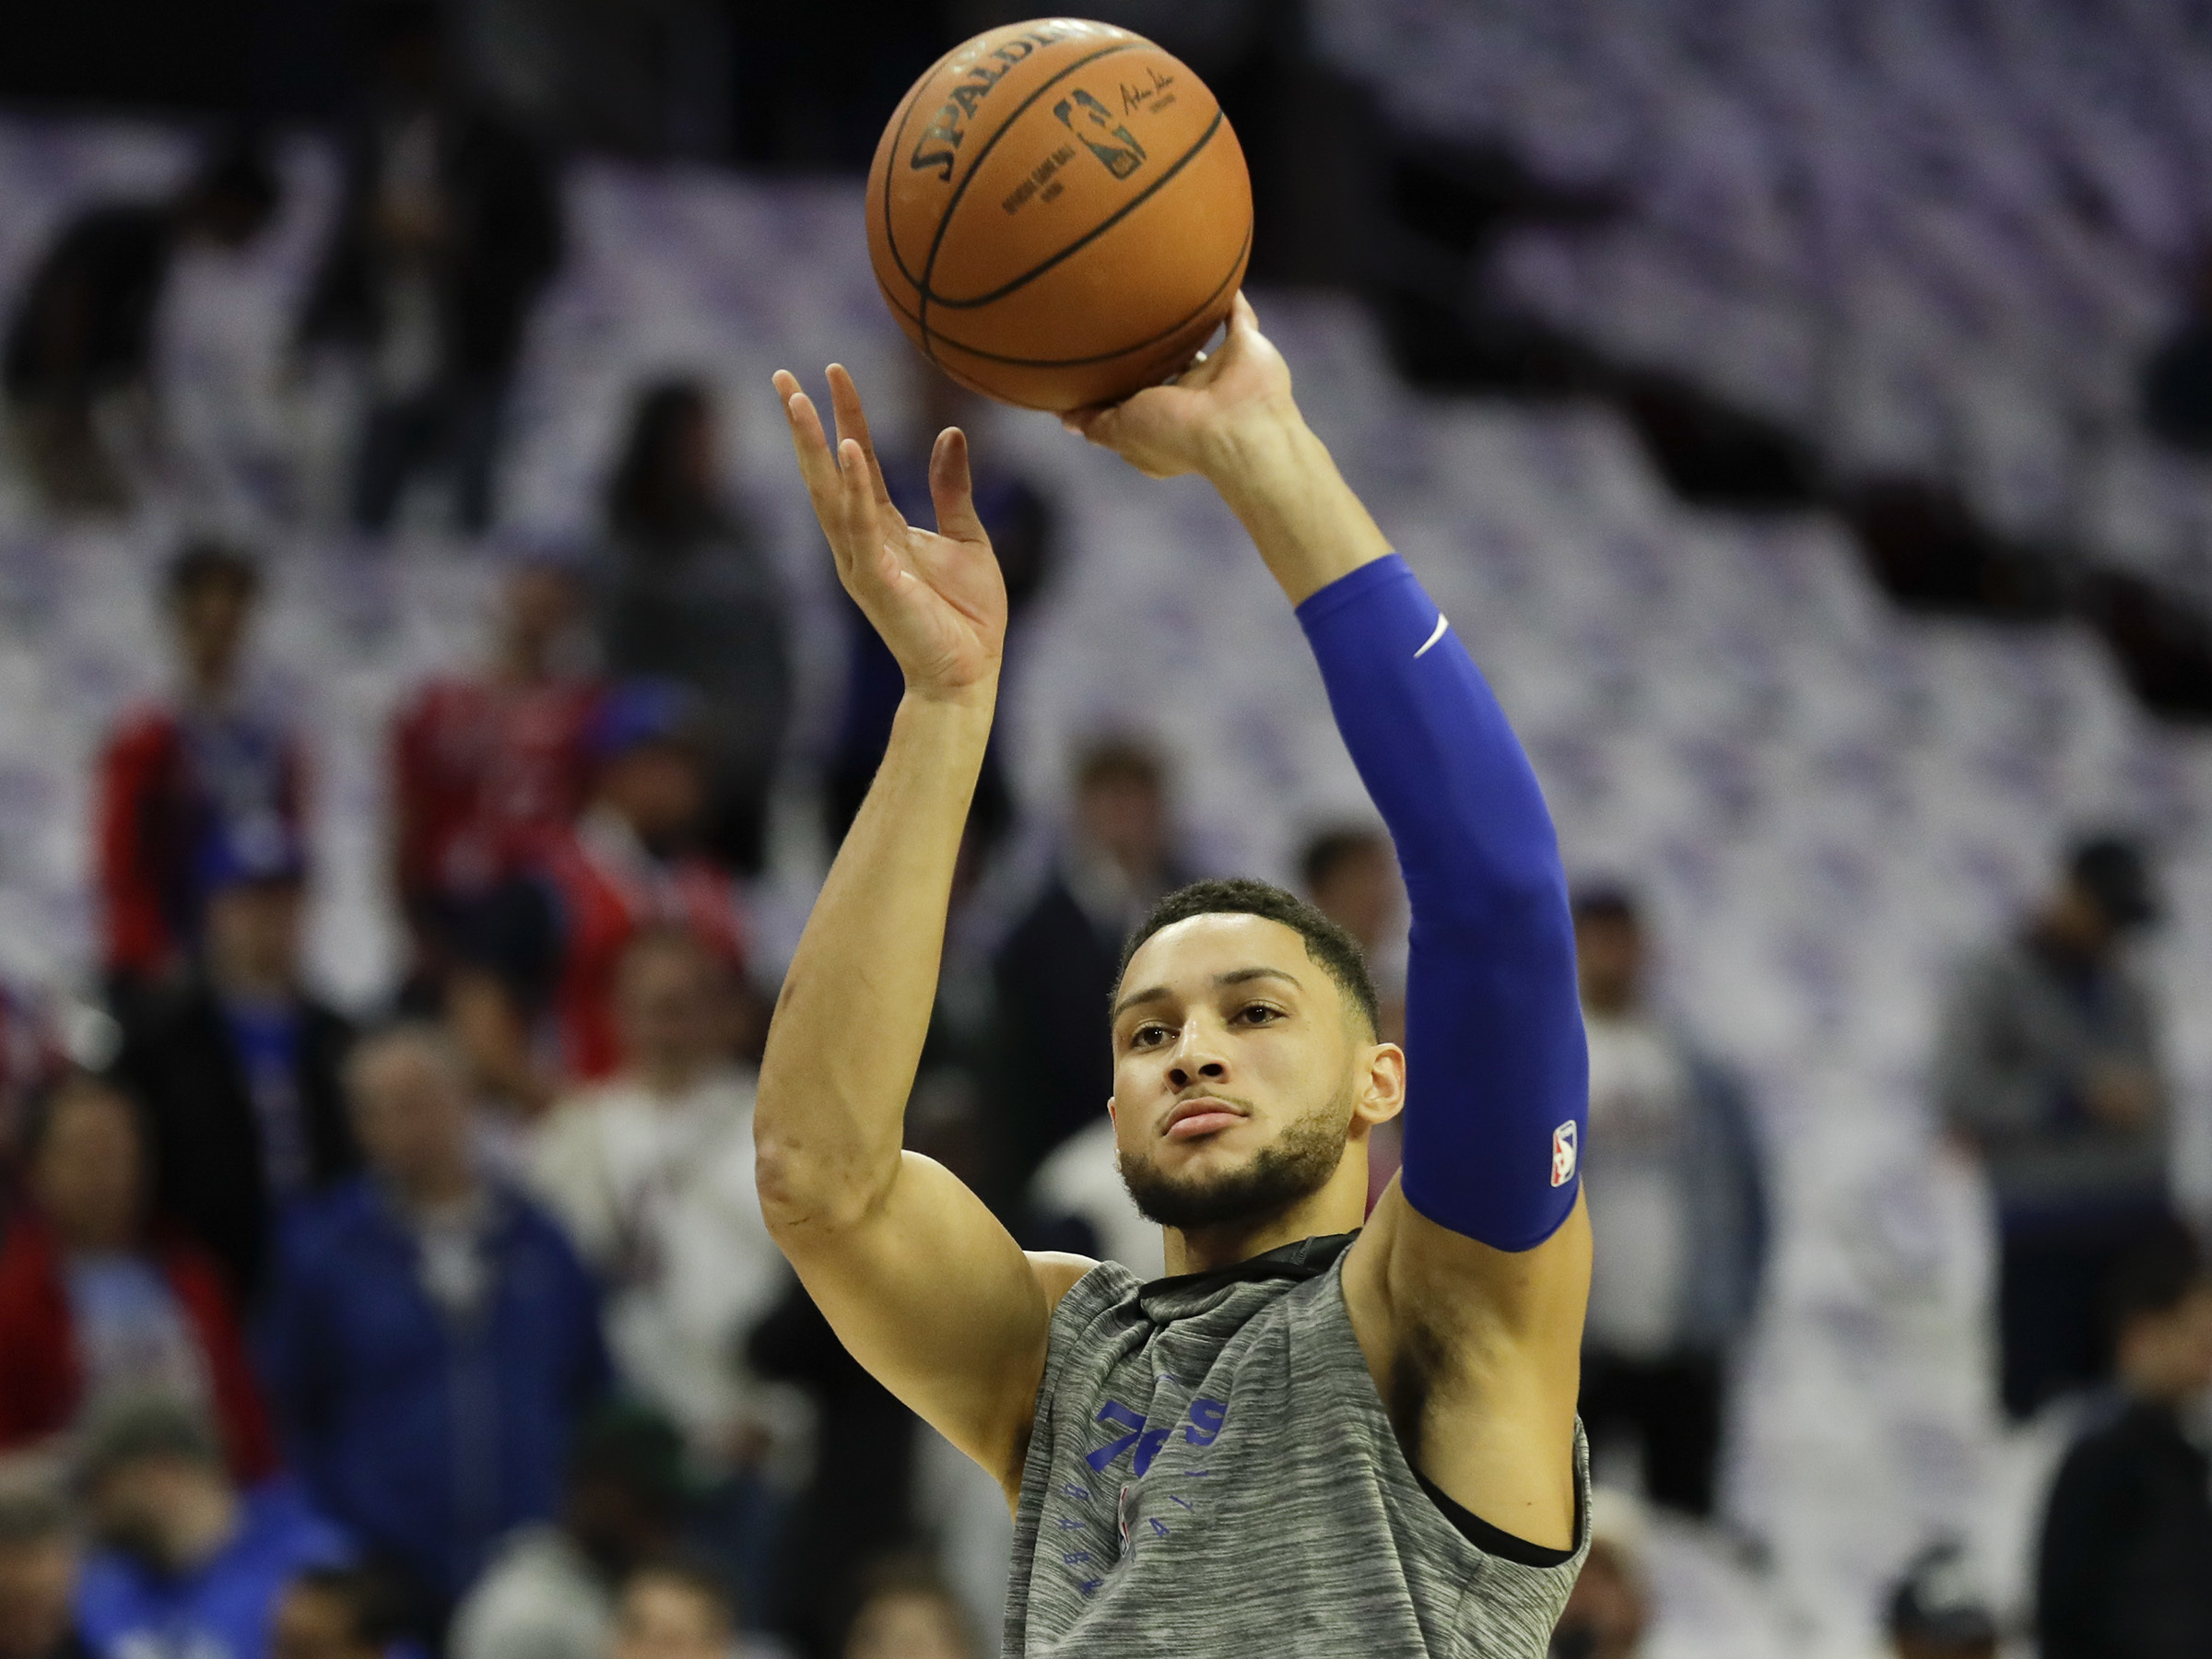 Sixers guard Ben Simmons shoots the basketball during warm-ups before the Sixers play the Chicago Bulls on Thursday, October 18, 2018 in Philadelphia.